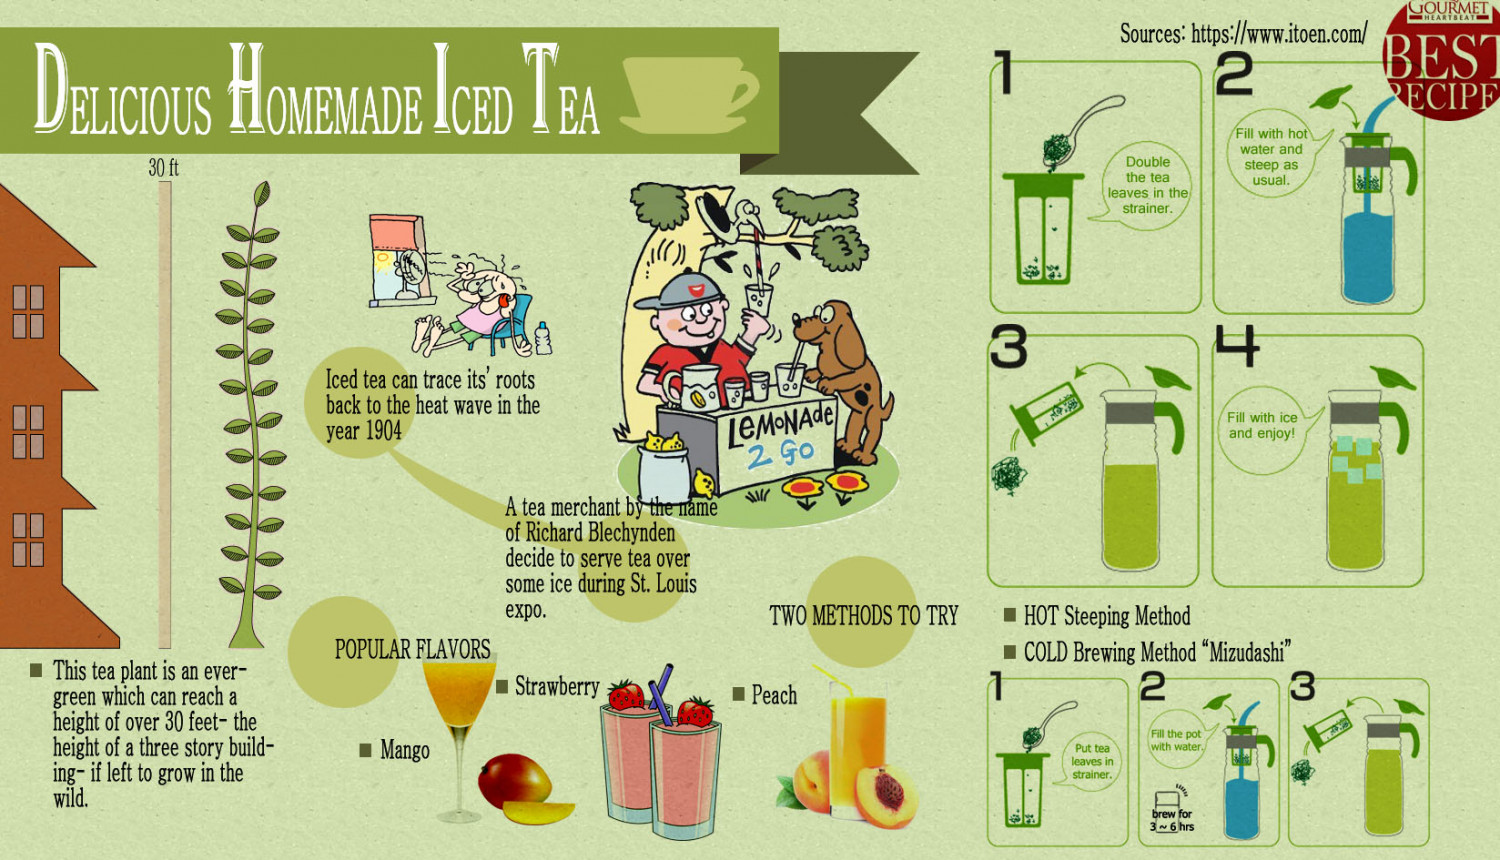 Delicious Homemade Iced Tea Infographic